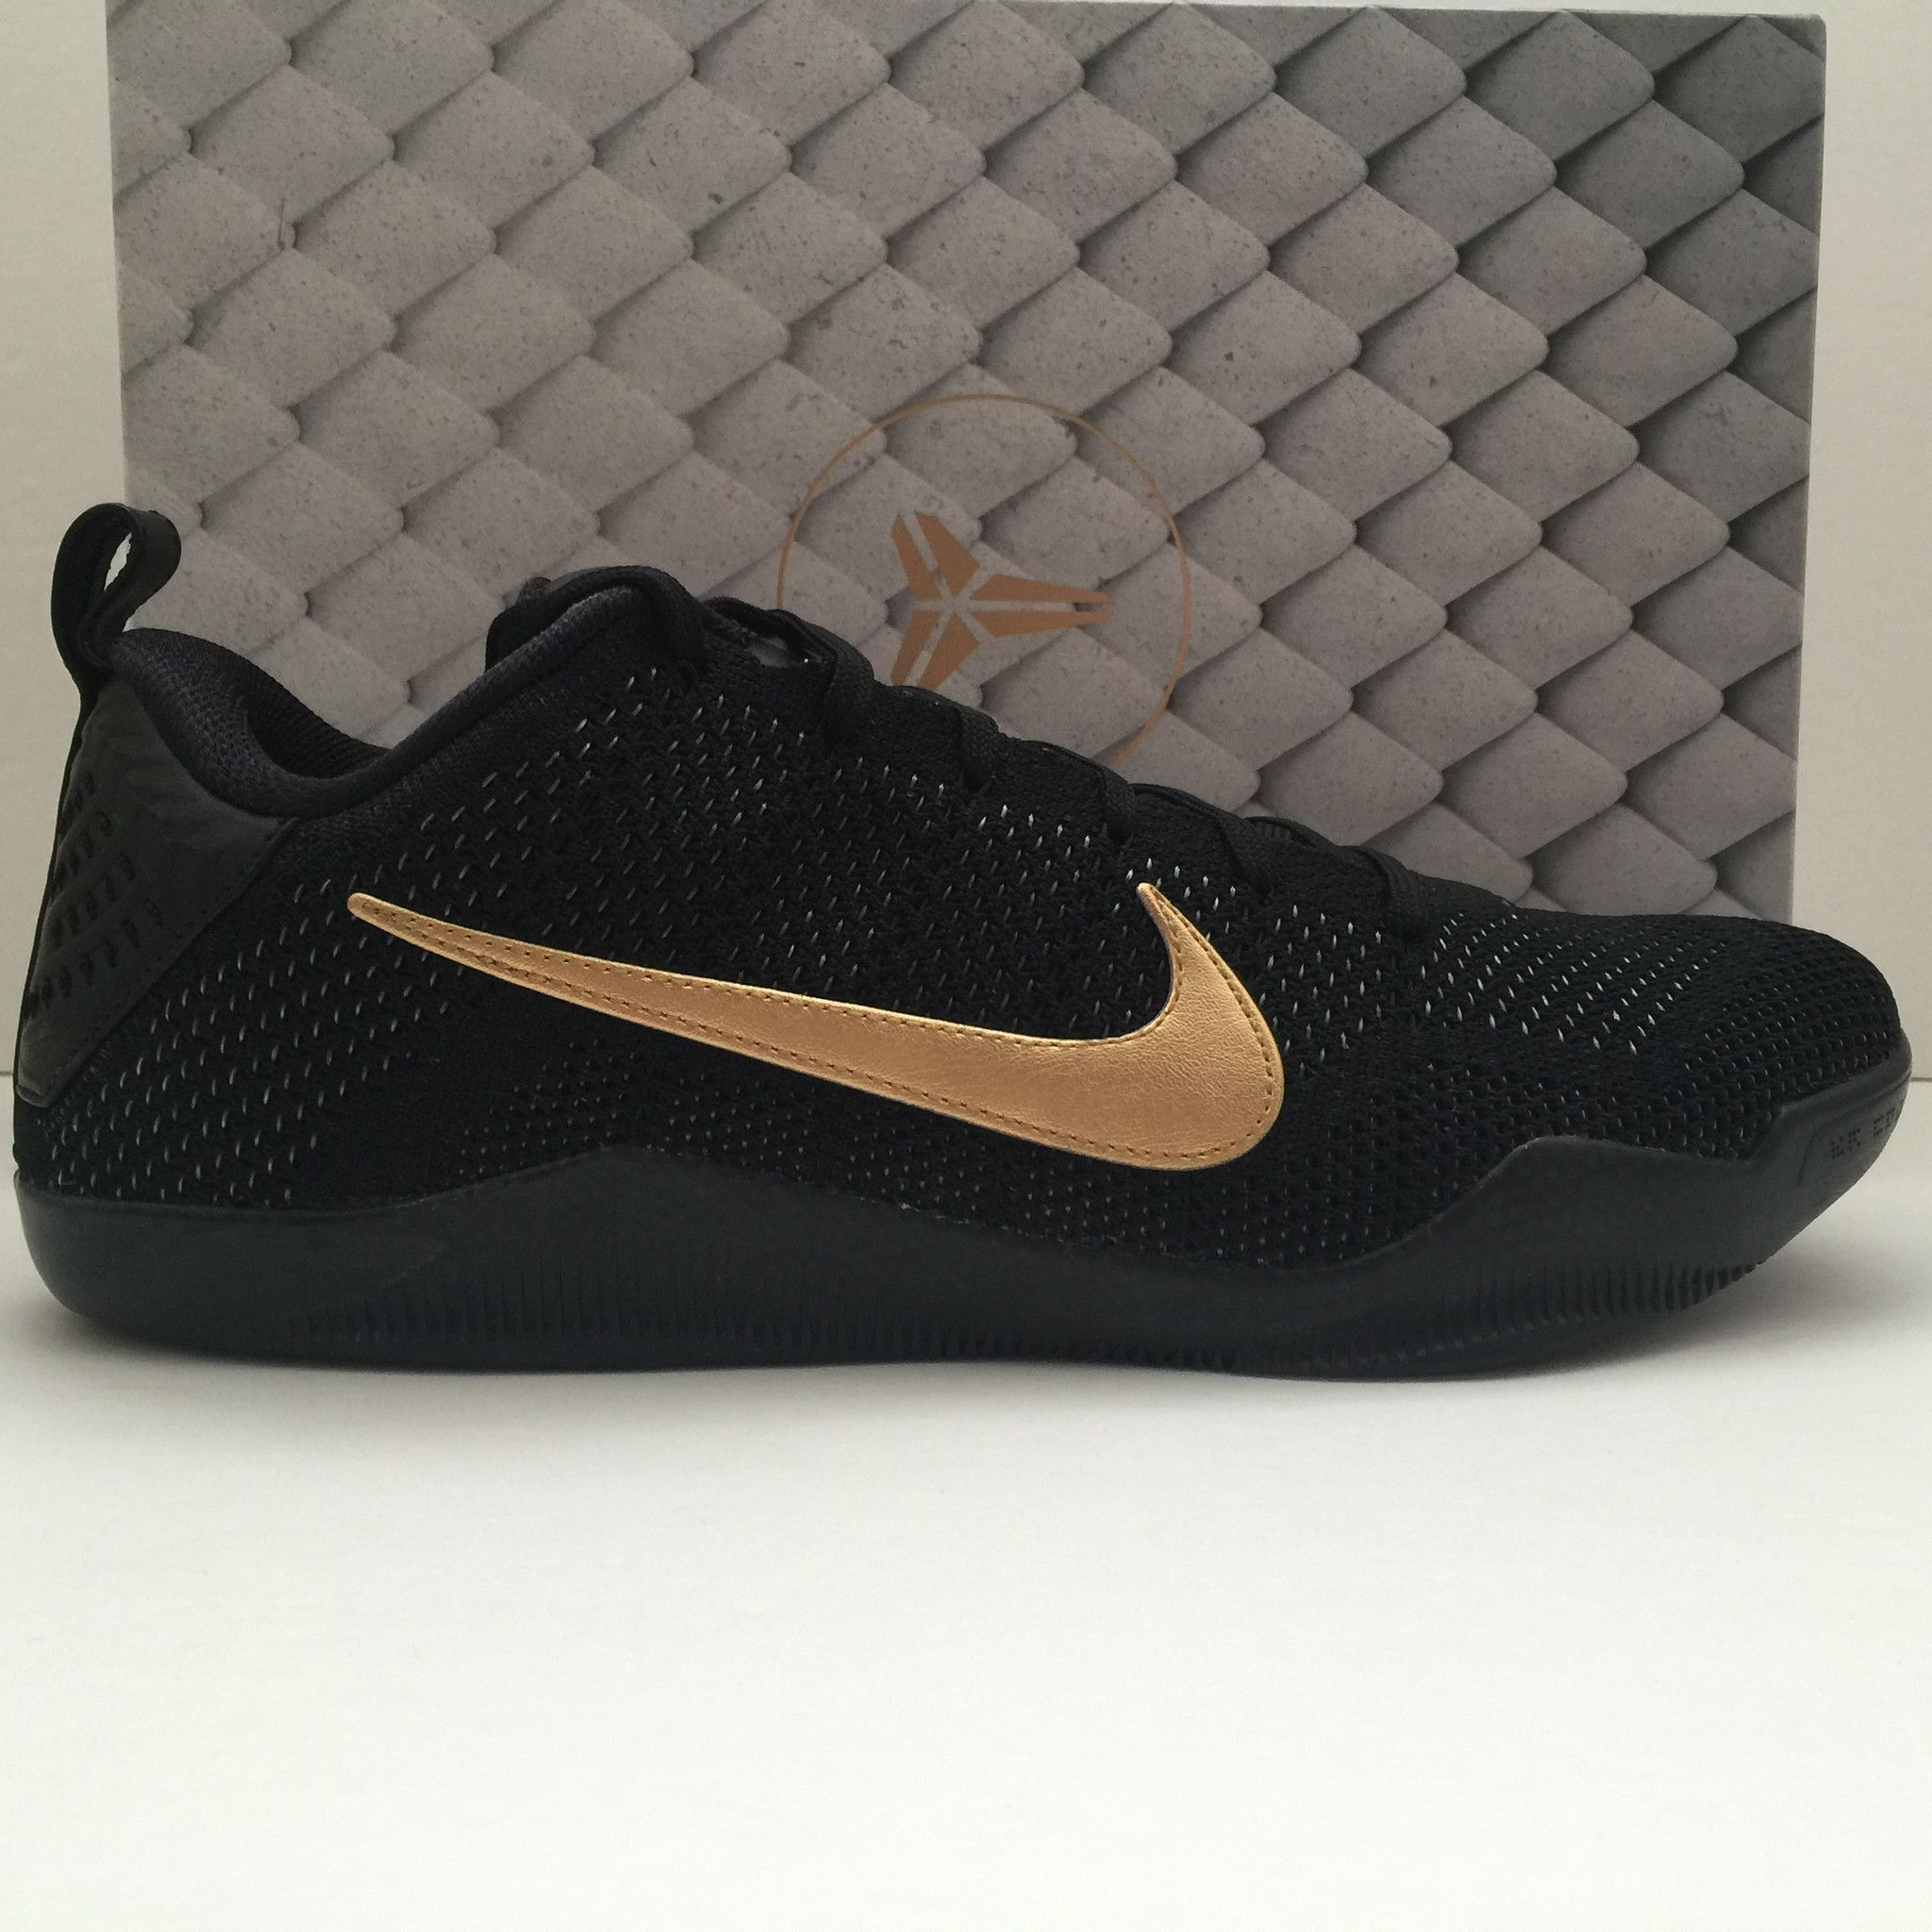 5a15ac56f0c8 DS Nike Kobe 11 XI Elite Low FTB Fade To Black Size 12 in 2019 ...